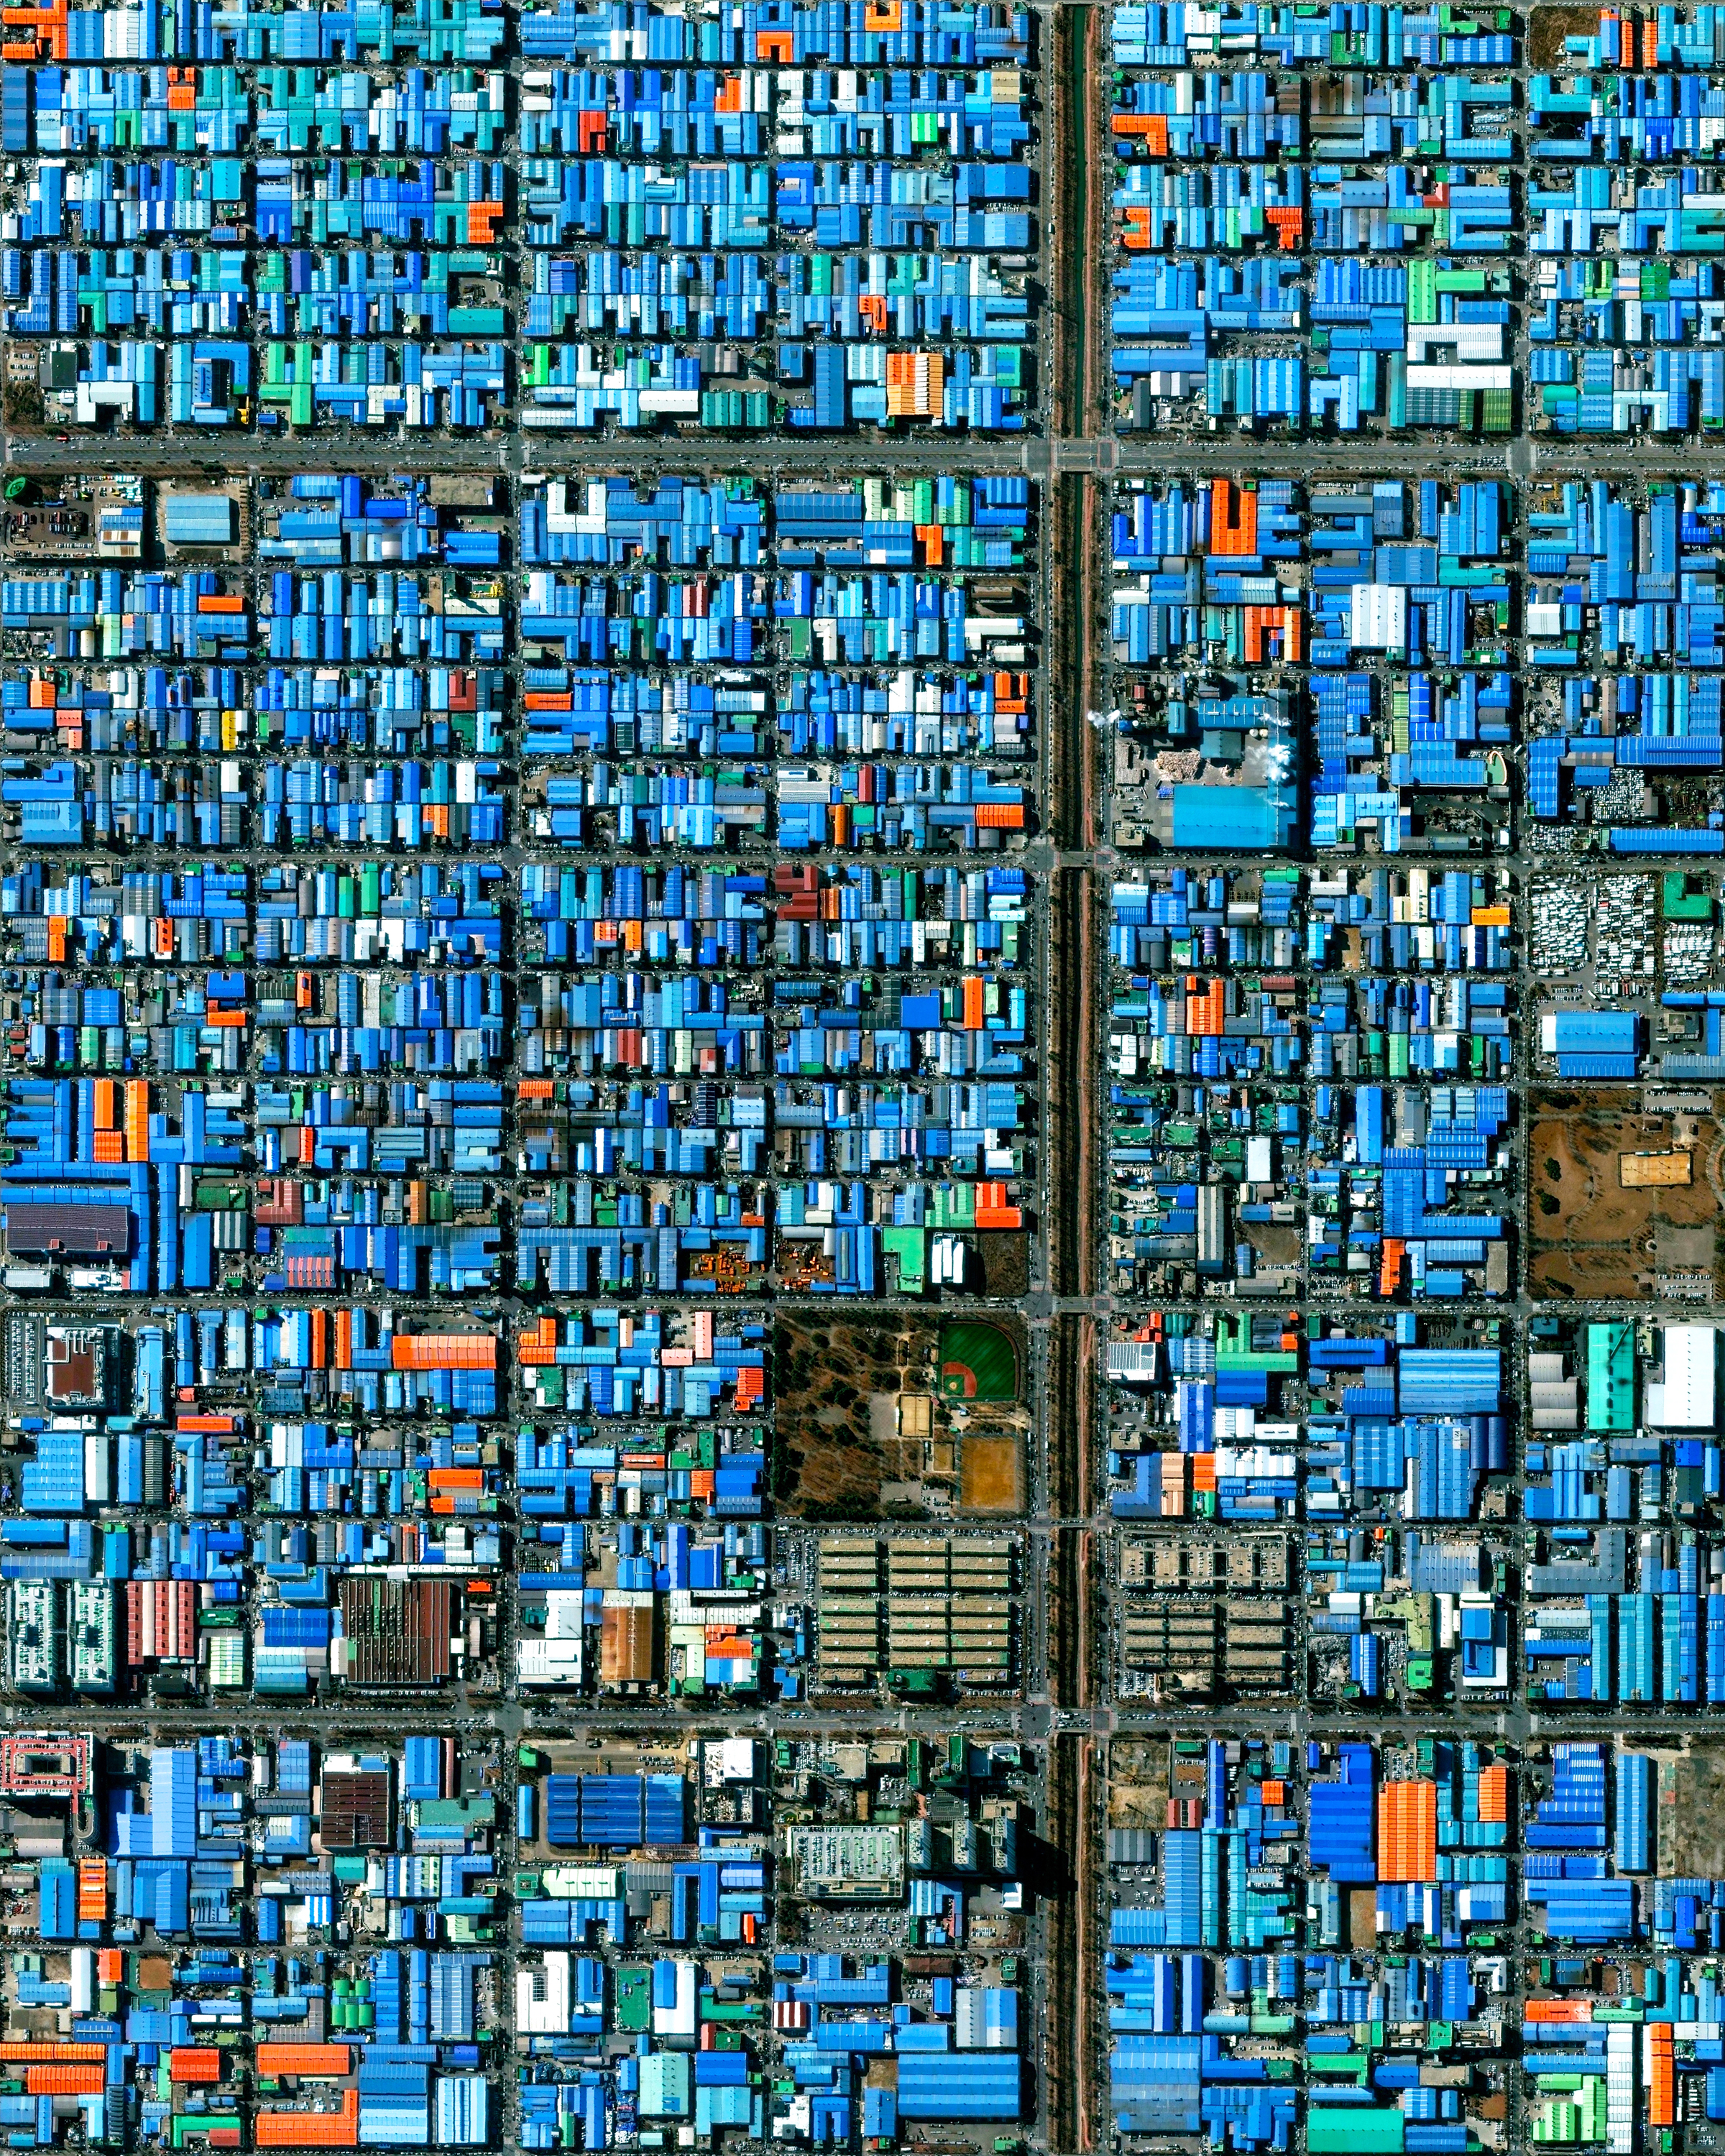 """This Overview captures Jeongwang-dong, an industrial sector in the city of Ansan, South Korea. The Korean government has intensively driven development of Ansan, particularly in this area, with an emphasis on manufacturing. The striking blue color shown here results from the use of aluminum roofing, which is used for its low cost and longevity.  37°20'22.0""""N, 126°42'54.9""""E  Source imagery: DigitalGlobe"""